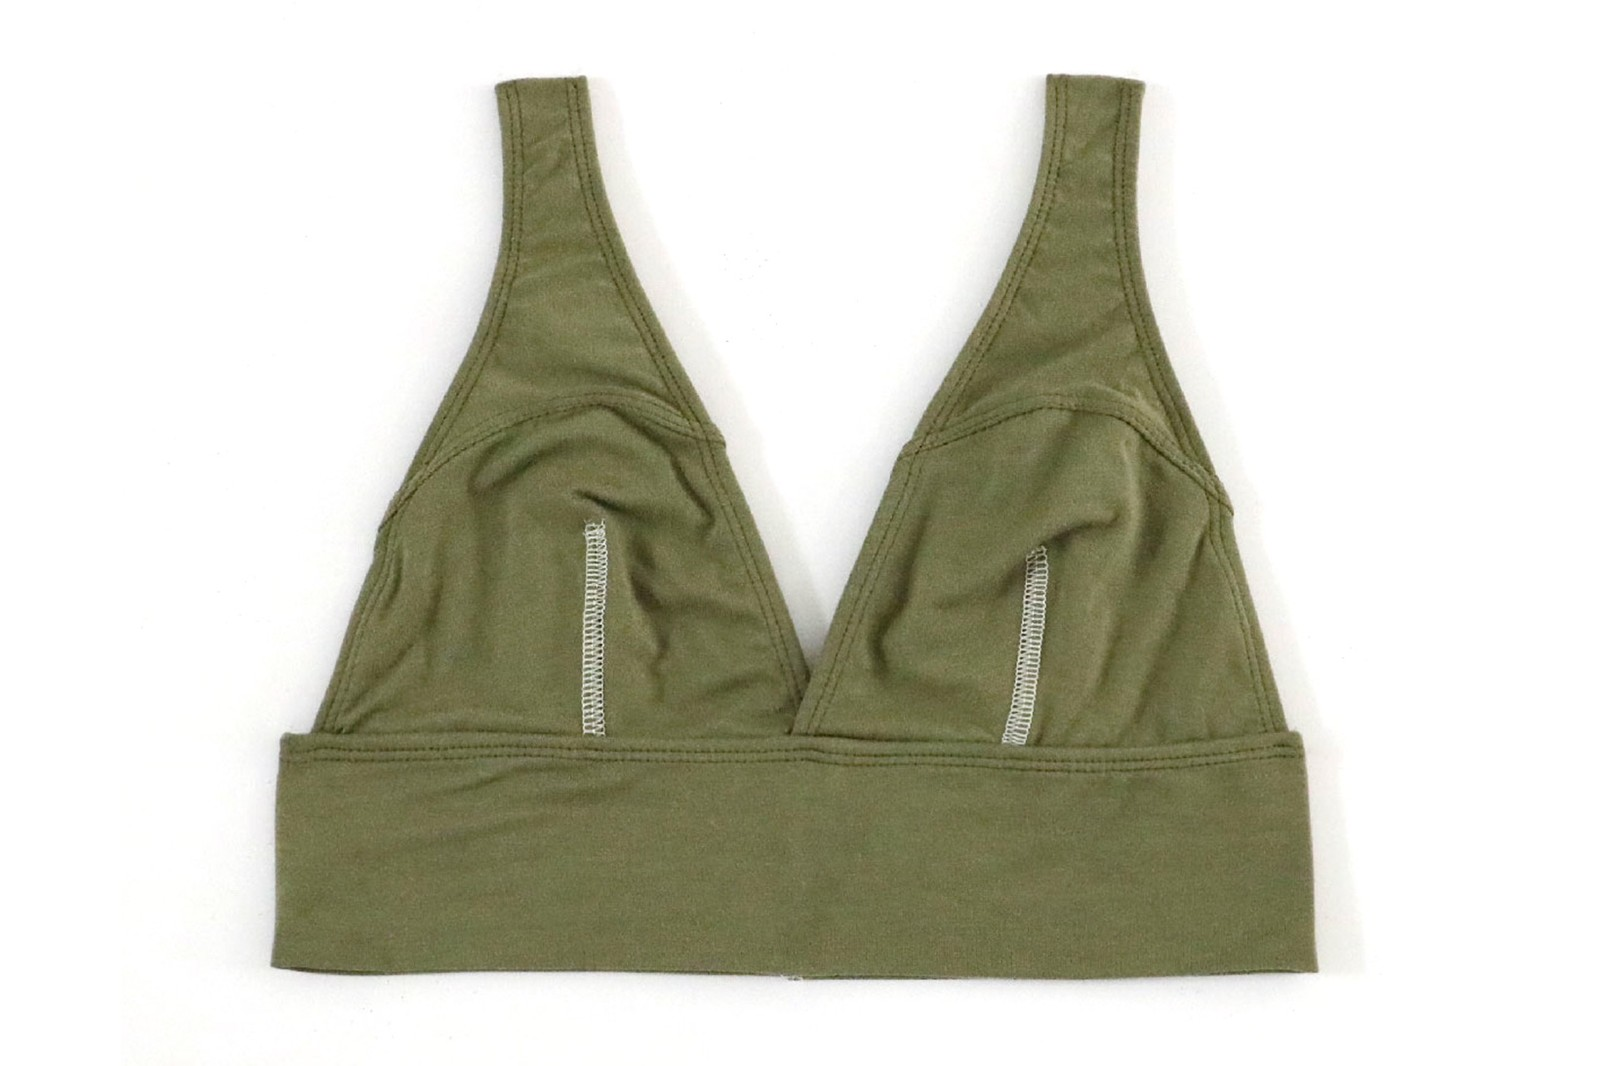 mary young karena evans loungewear collaboration crop tops bras bike shorts bras release info